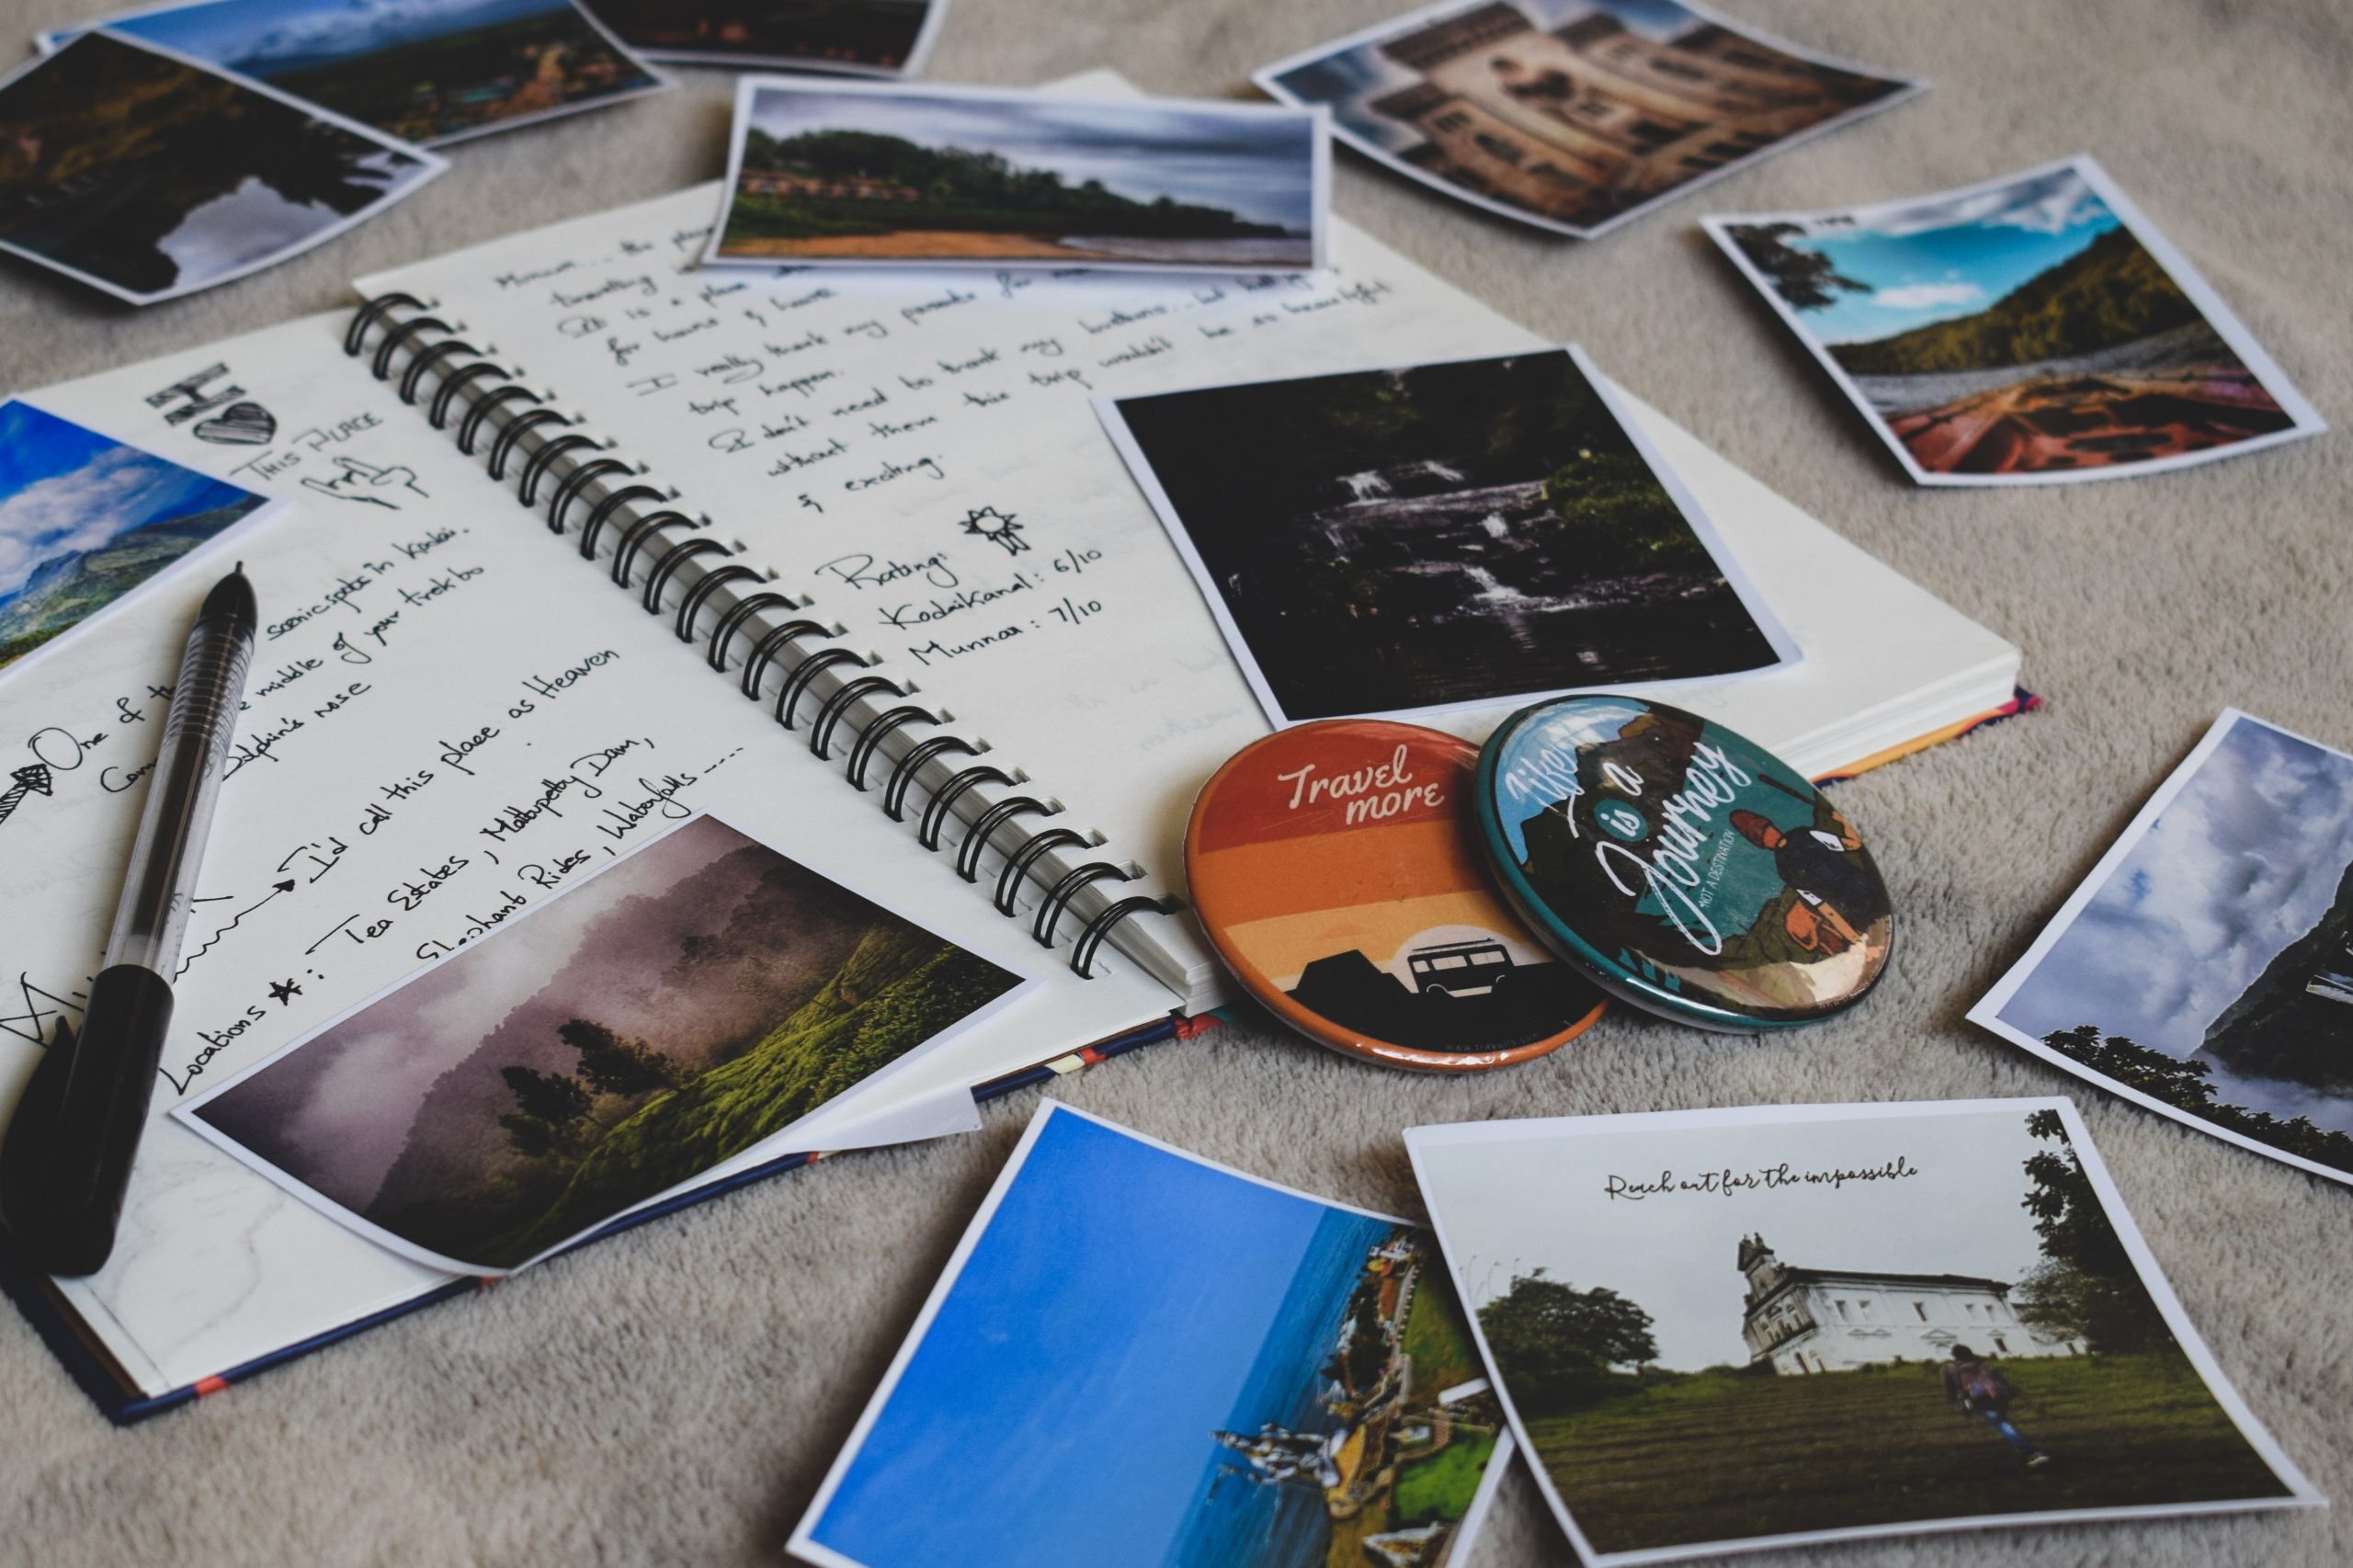 photos on table with notebook